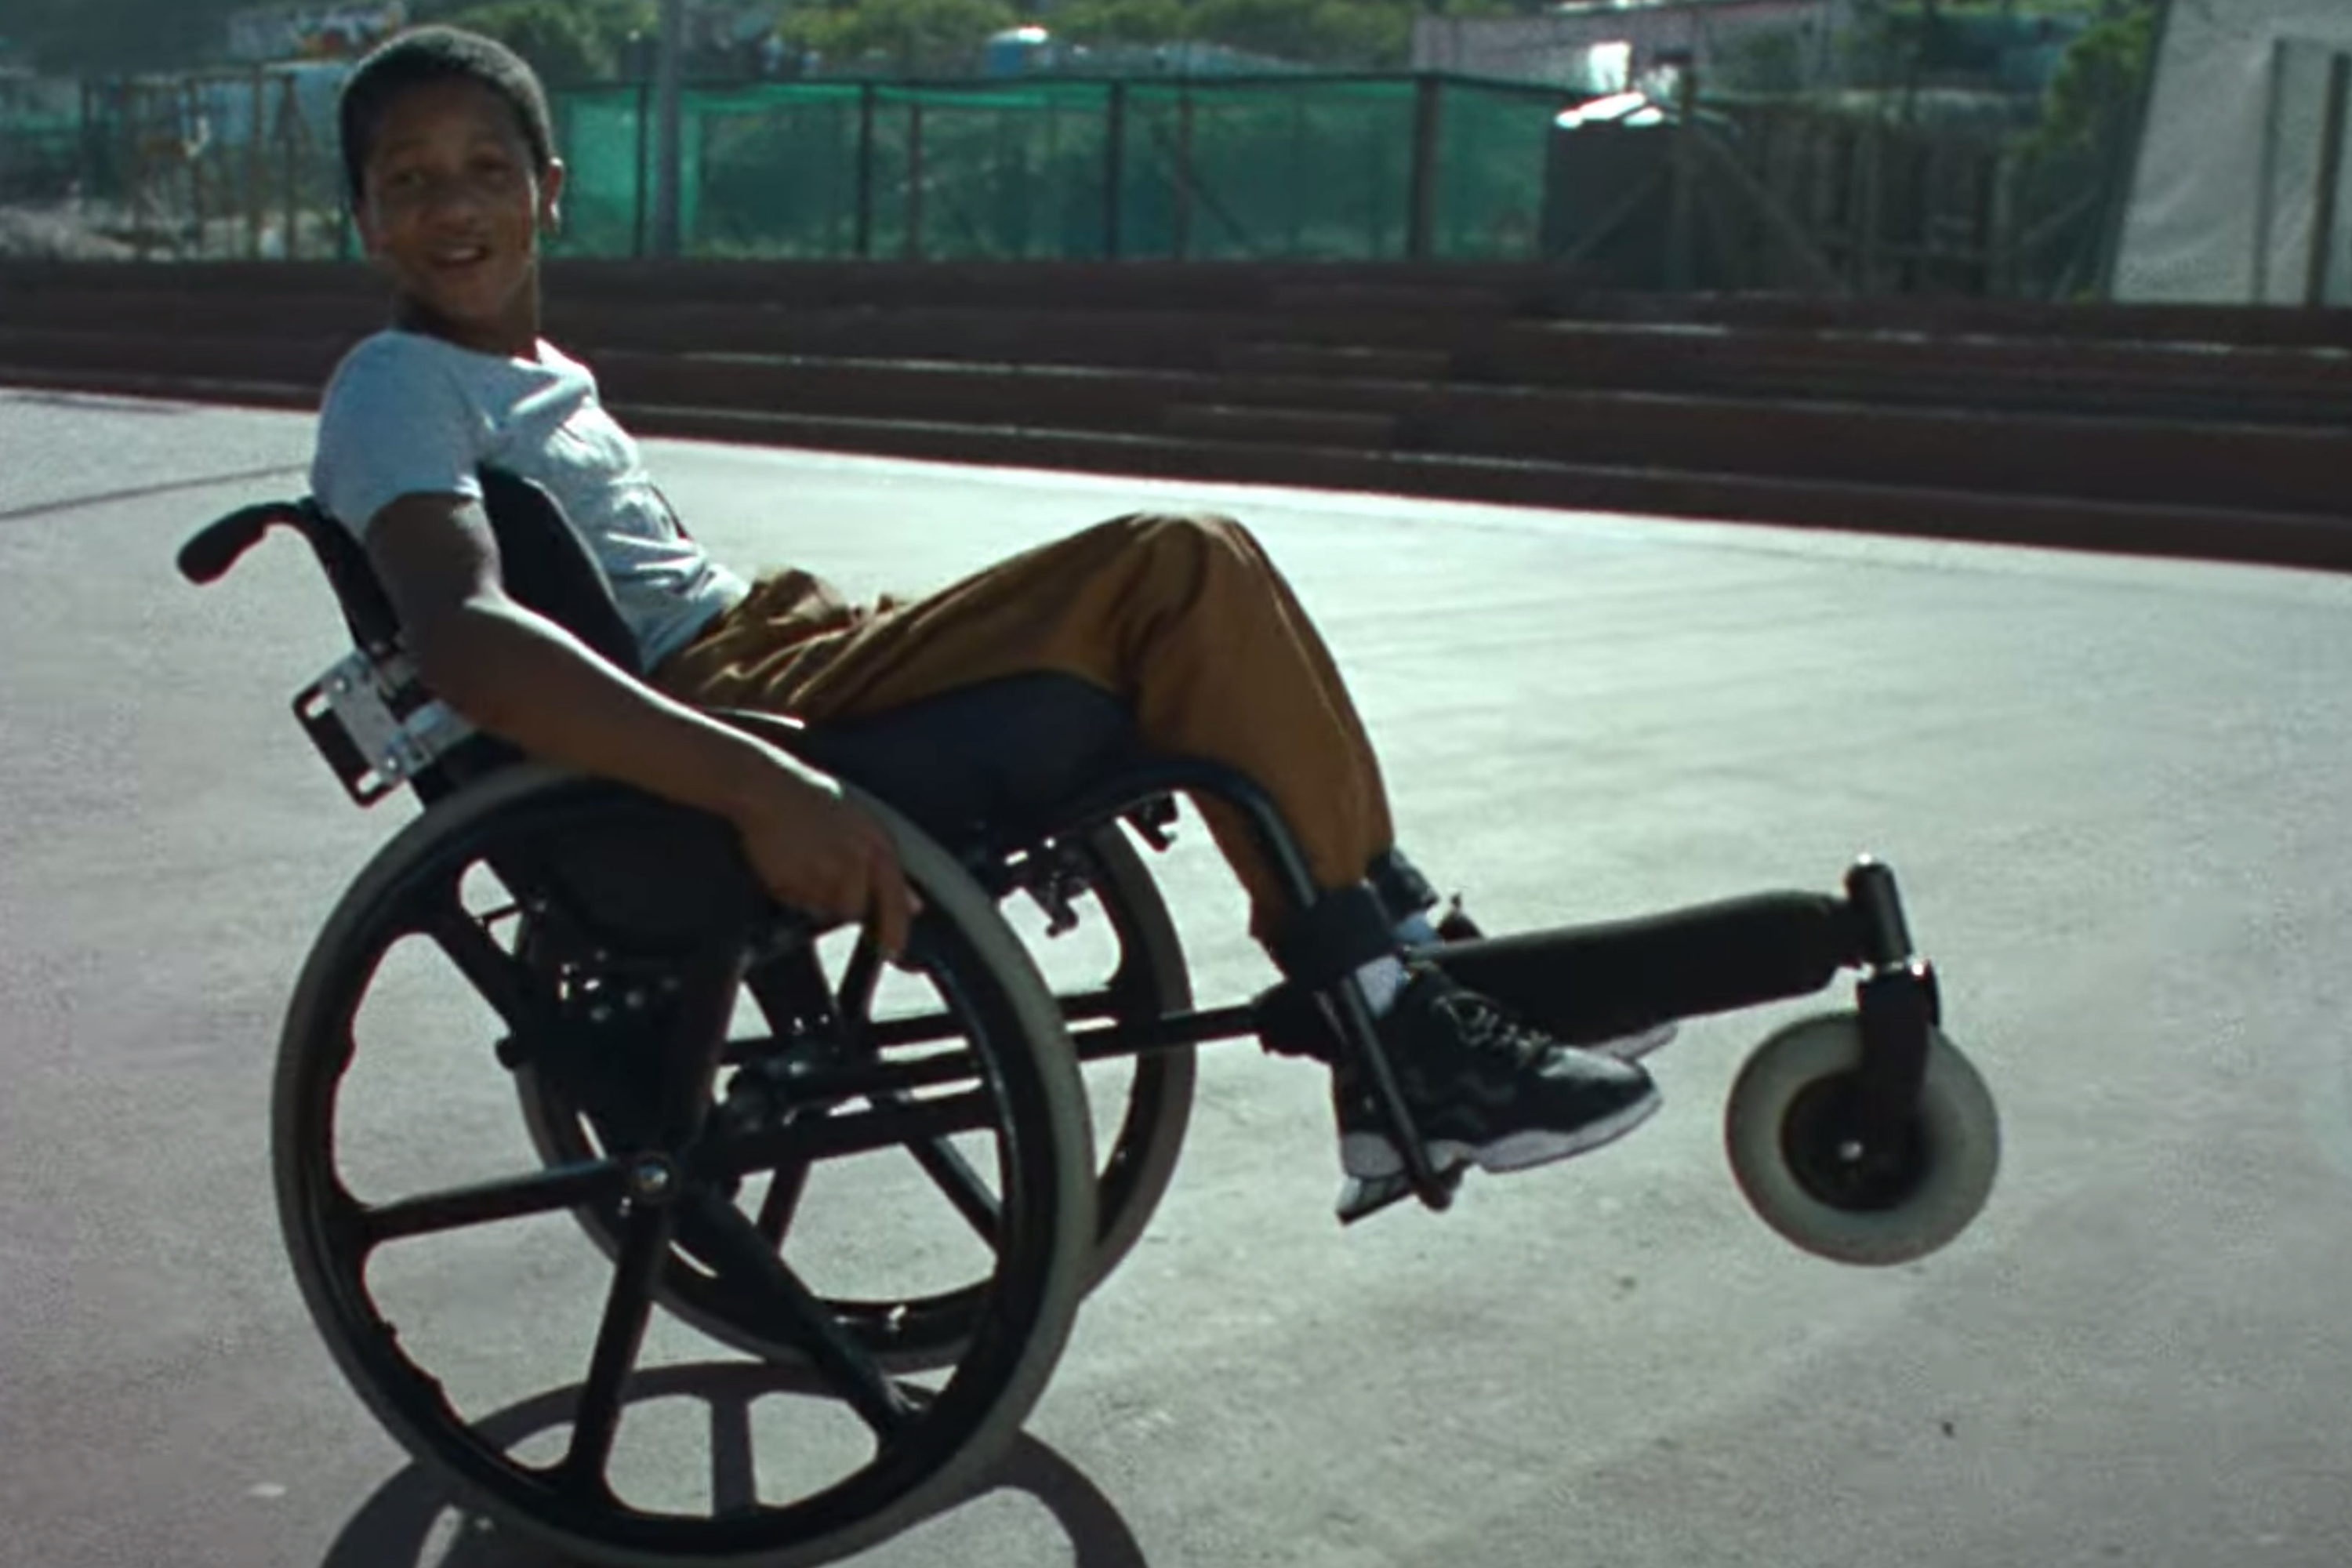 Google, Twitter, Facebook and other global brands back Paralympics push to 'normalize' disability